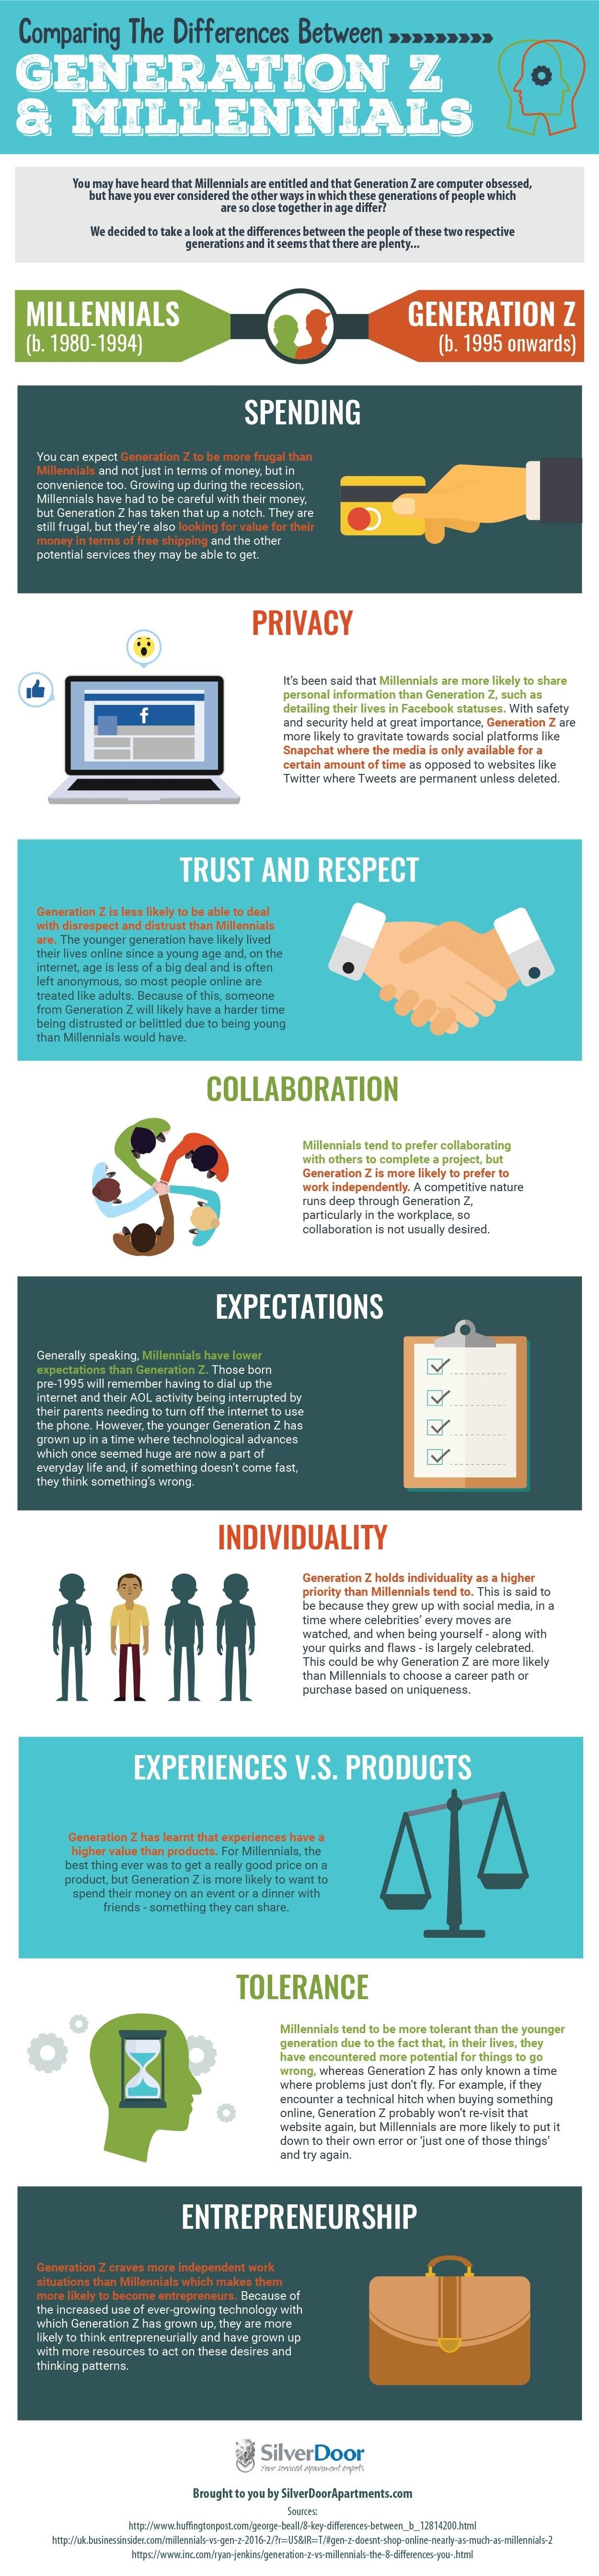 Comparing The Differences Between Generation Z Millennials Infographic Millennials Infographic Generation Gap Infographic Infographic Marketing